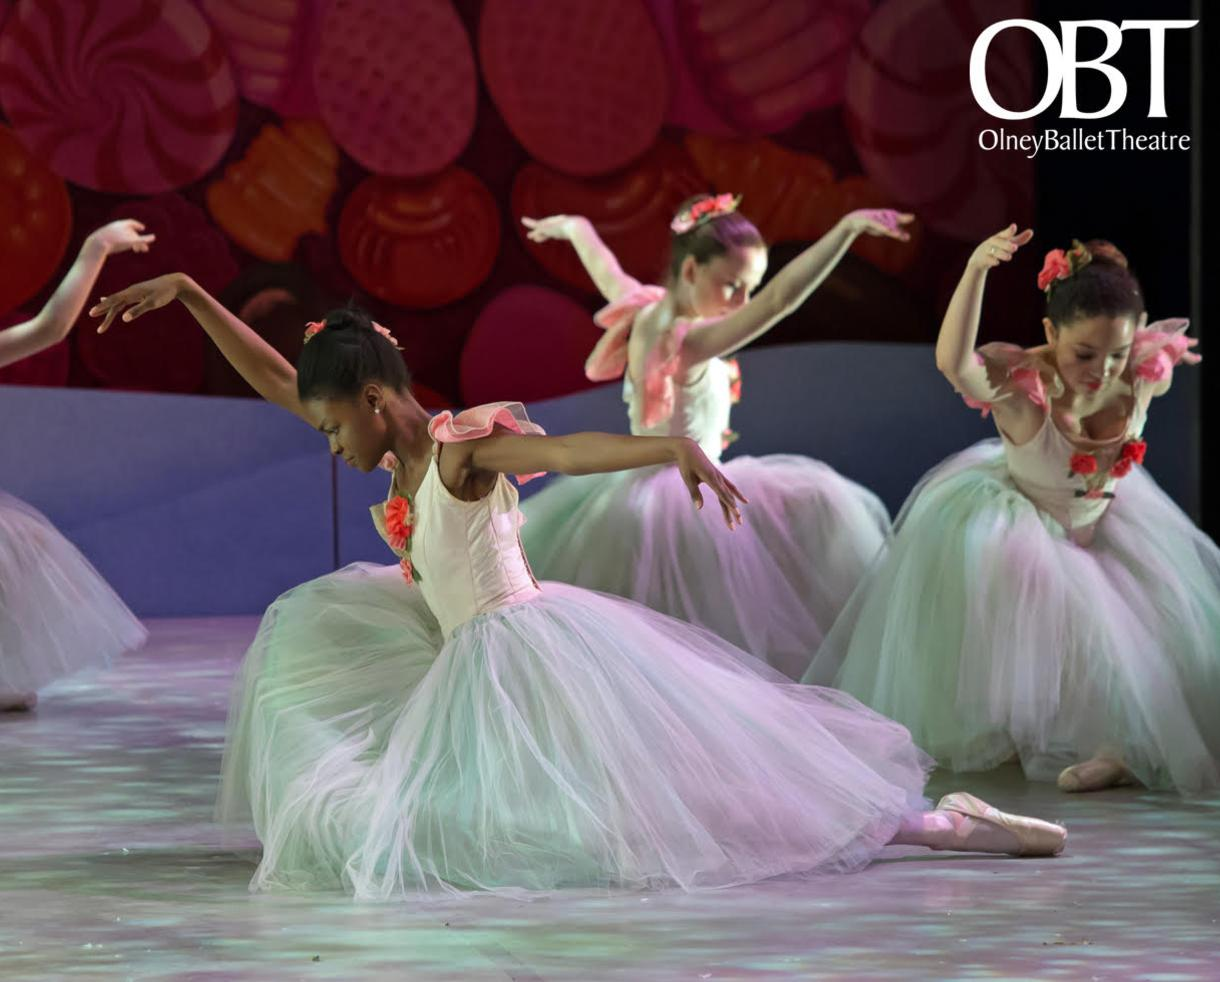 $23 for The Nutcracker at Olney Theatre (29% Off!)